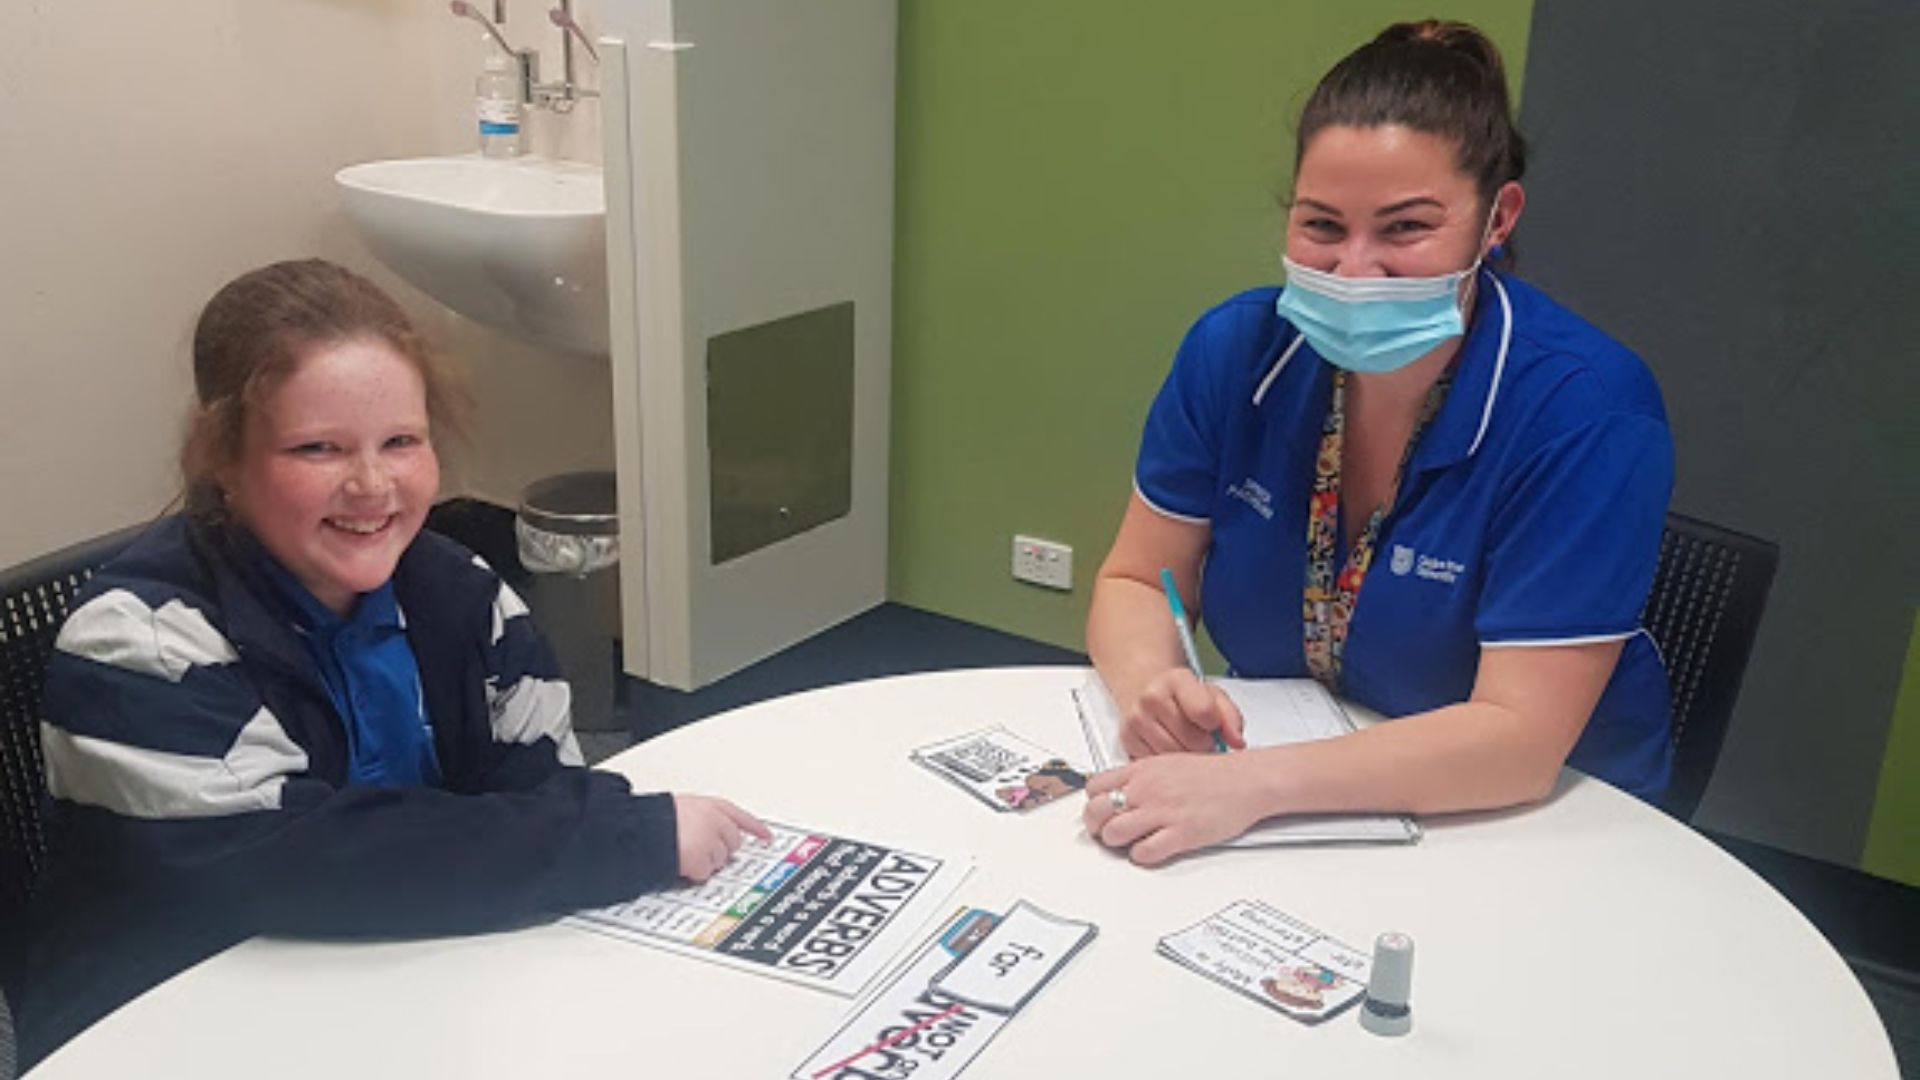 'Communicating with Confidence' at Charles Sturt University Speech Pathology Clinic is the priority